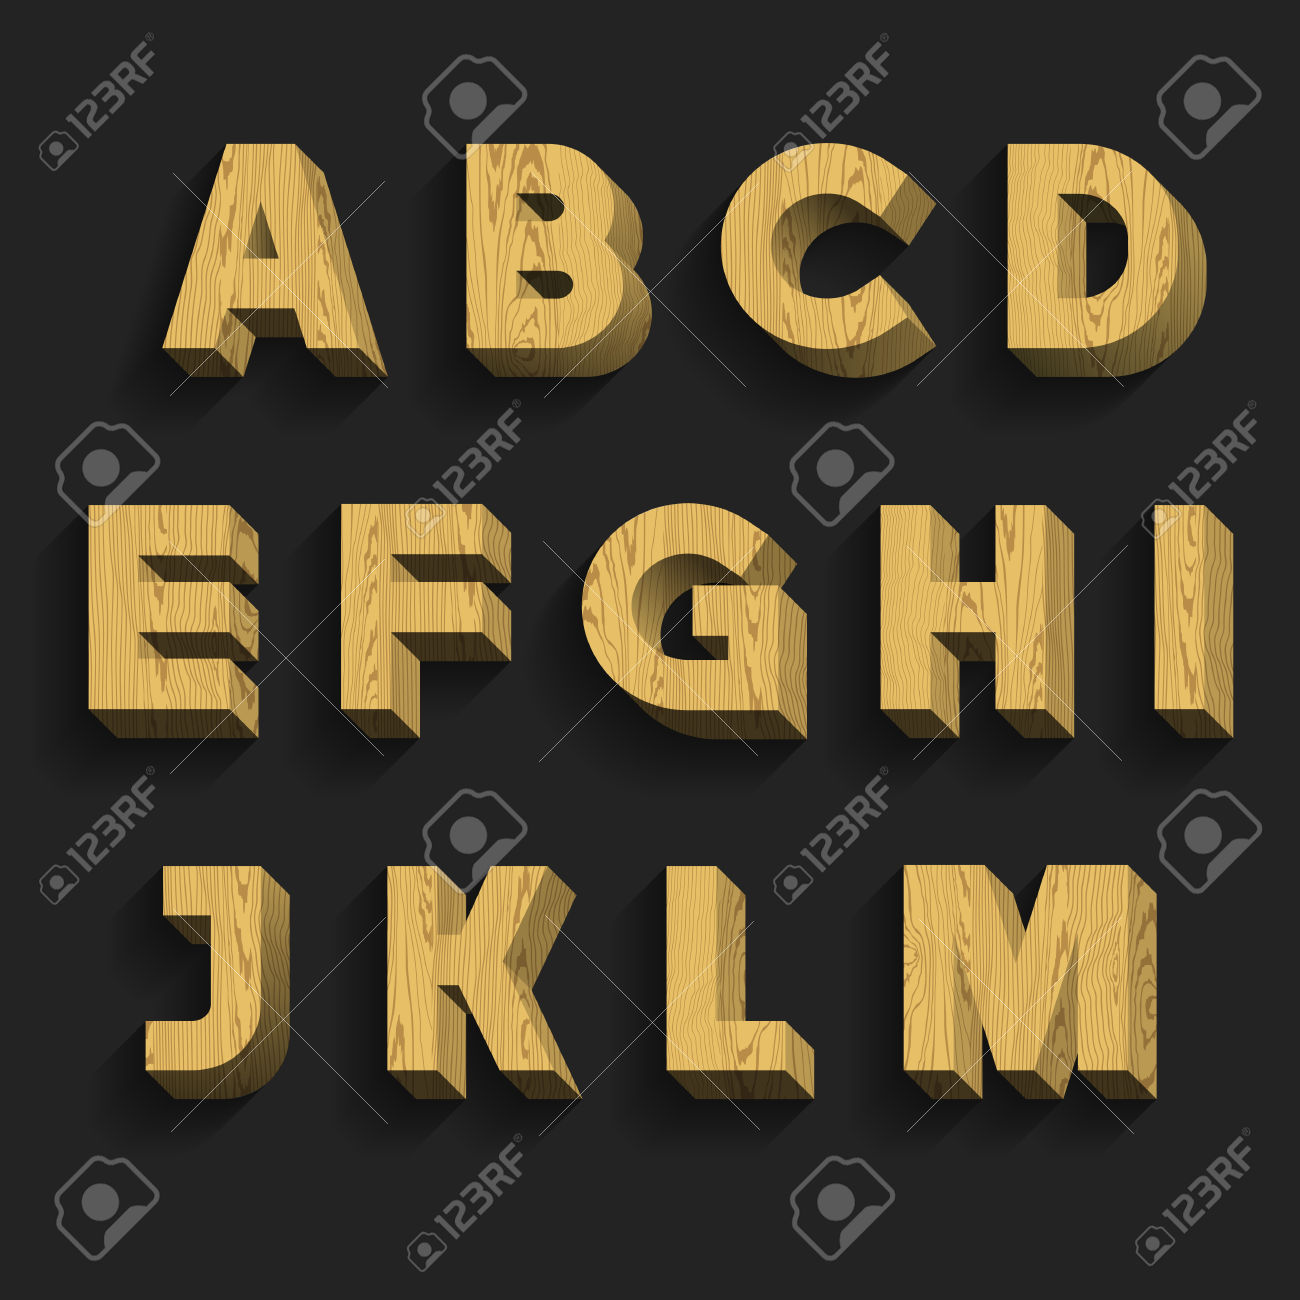 Number 1 wooden letter clipart image royalty free Wood Alphabet Vector Font. Part 1 Of 3. Letters A - M. 3D Wooden ... image royalty free